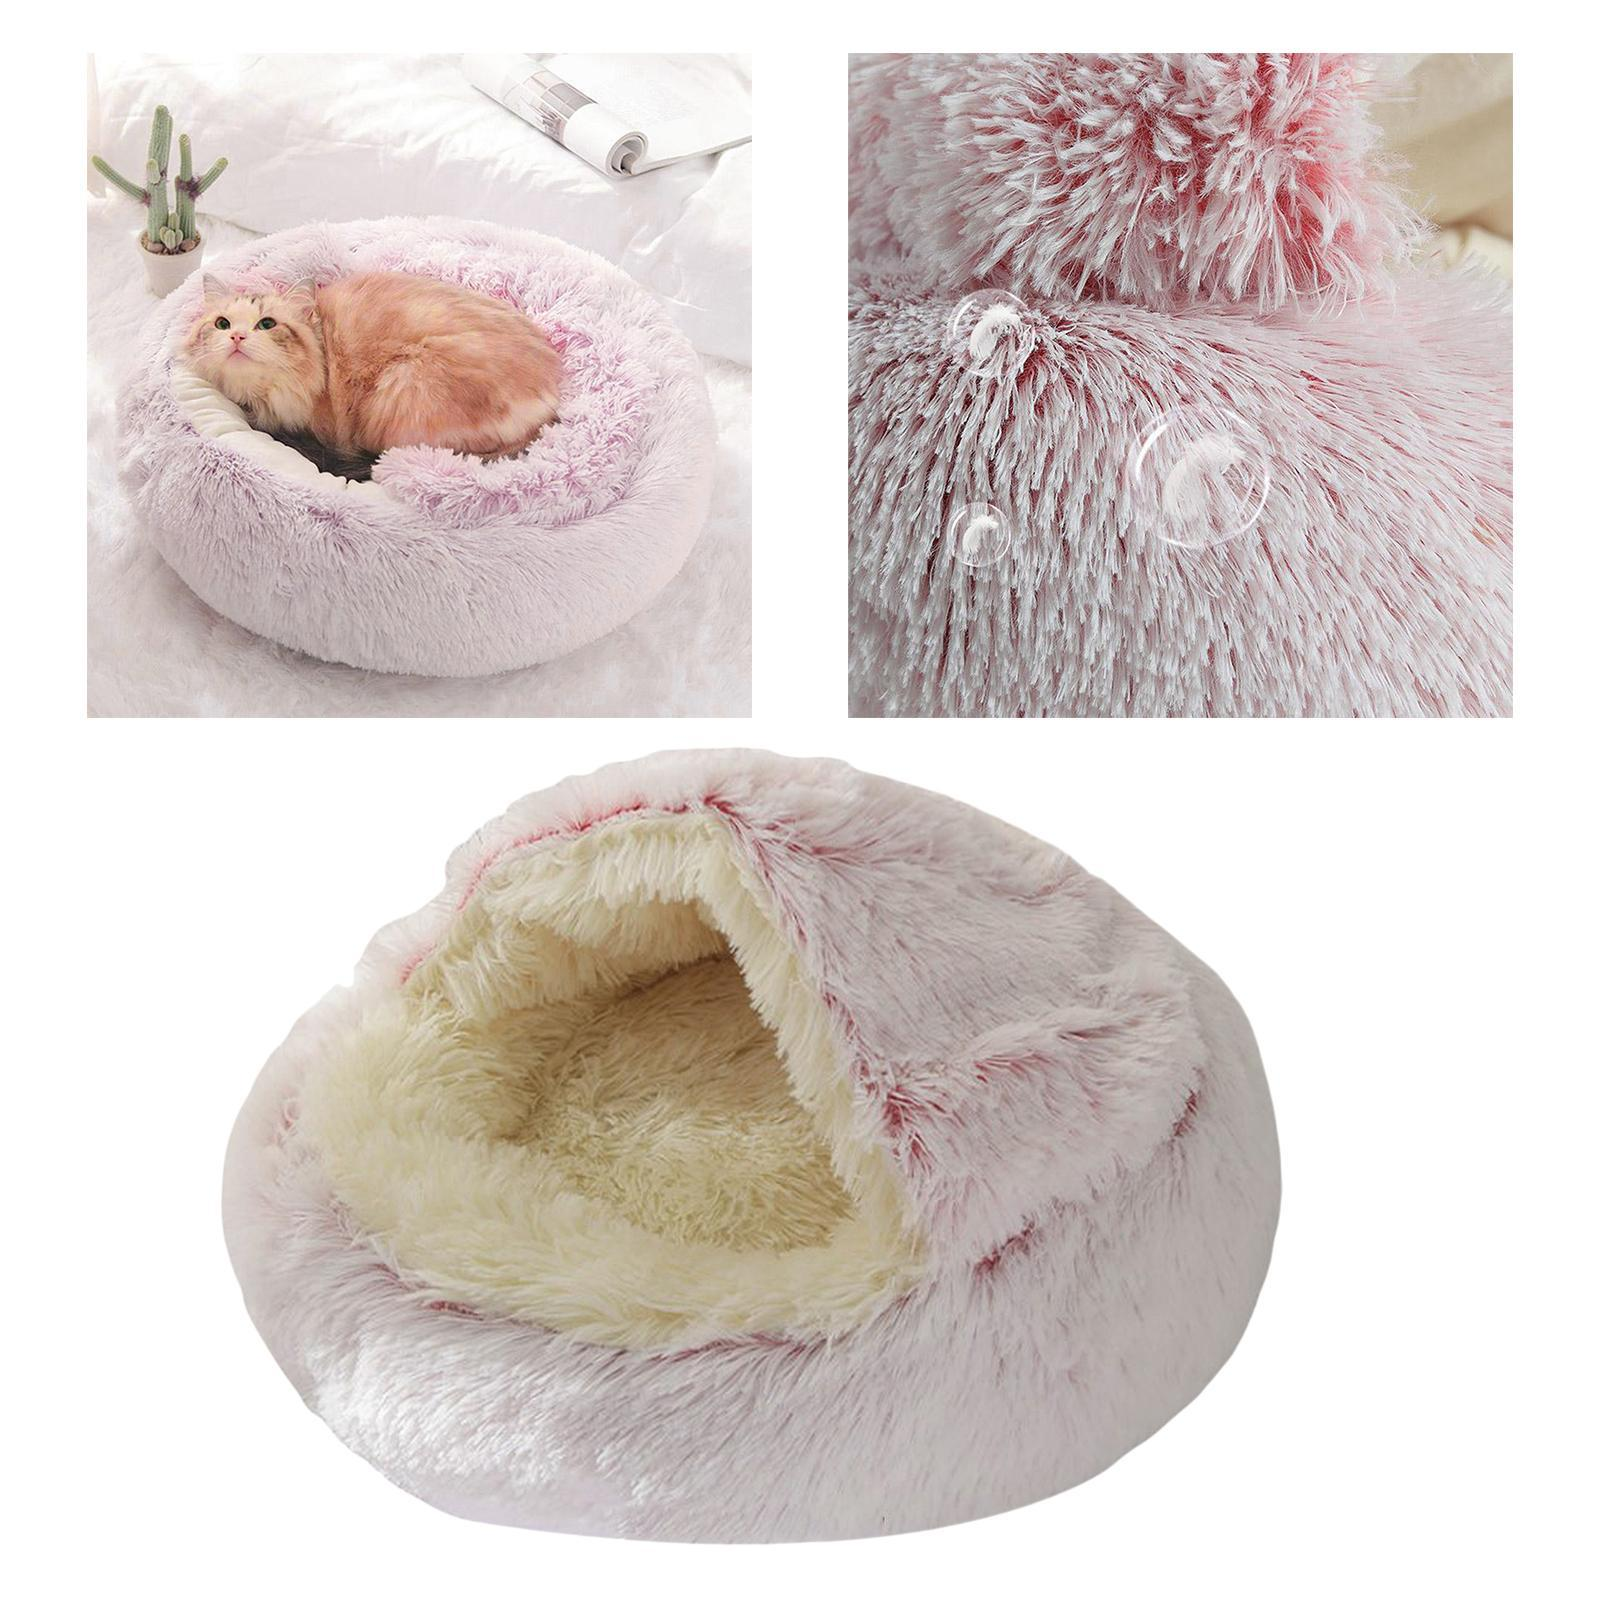 thumbnail 8 - Plush Pet Dog Cat Bed Fluffy Soft Warm Calming Bed Sleeping Kennel Cave Nest